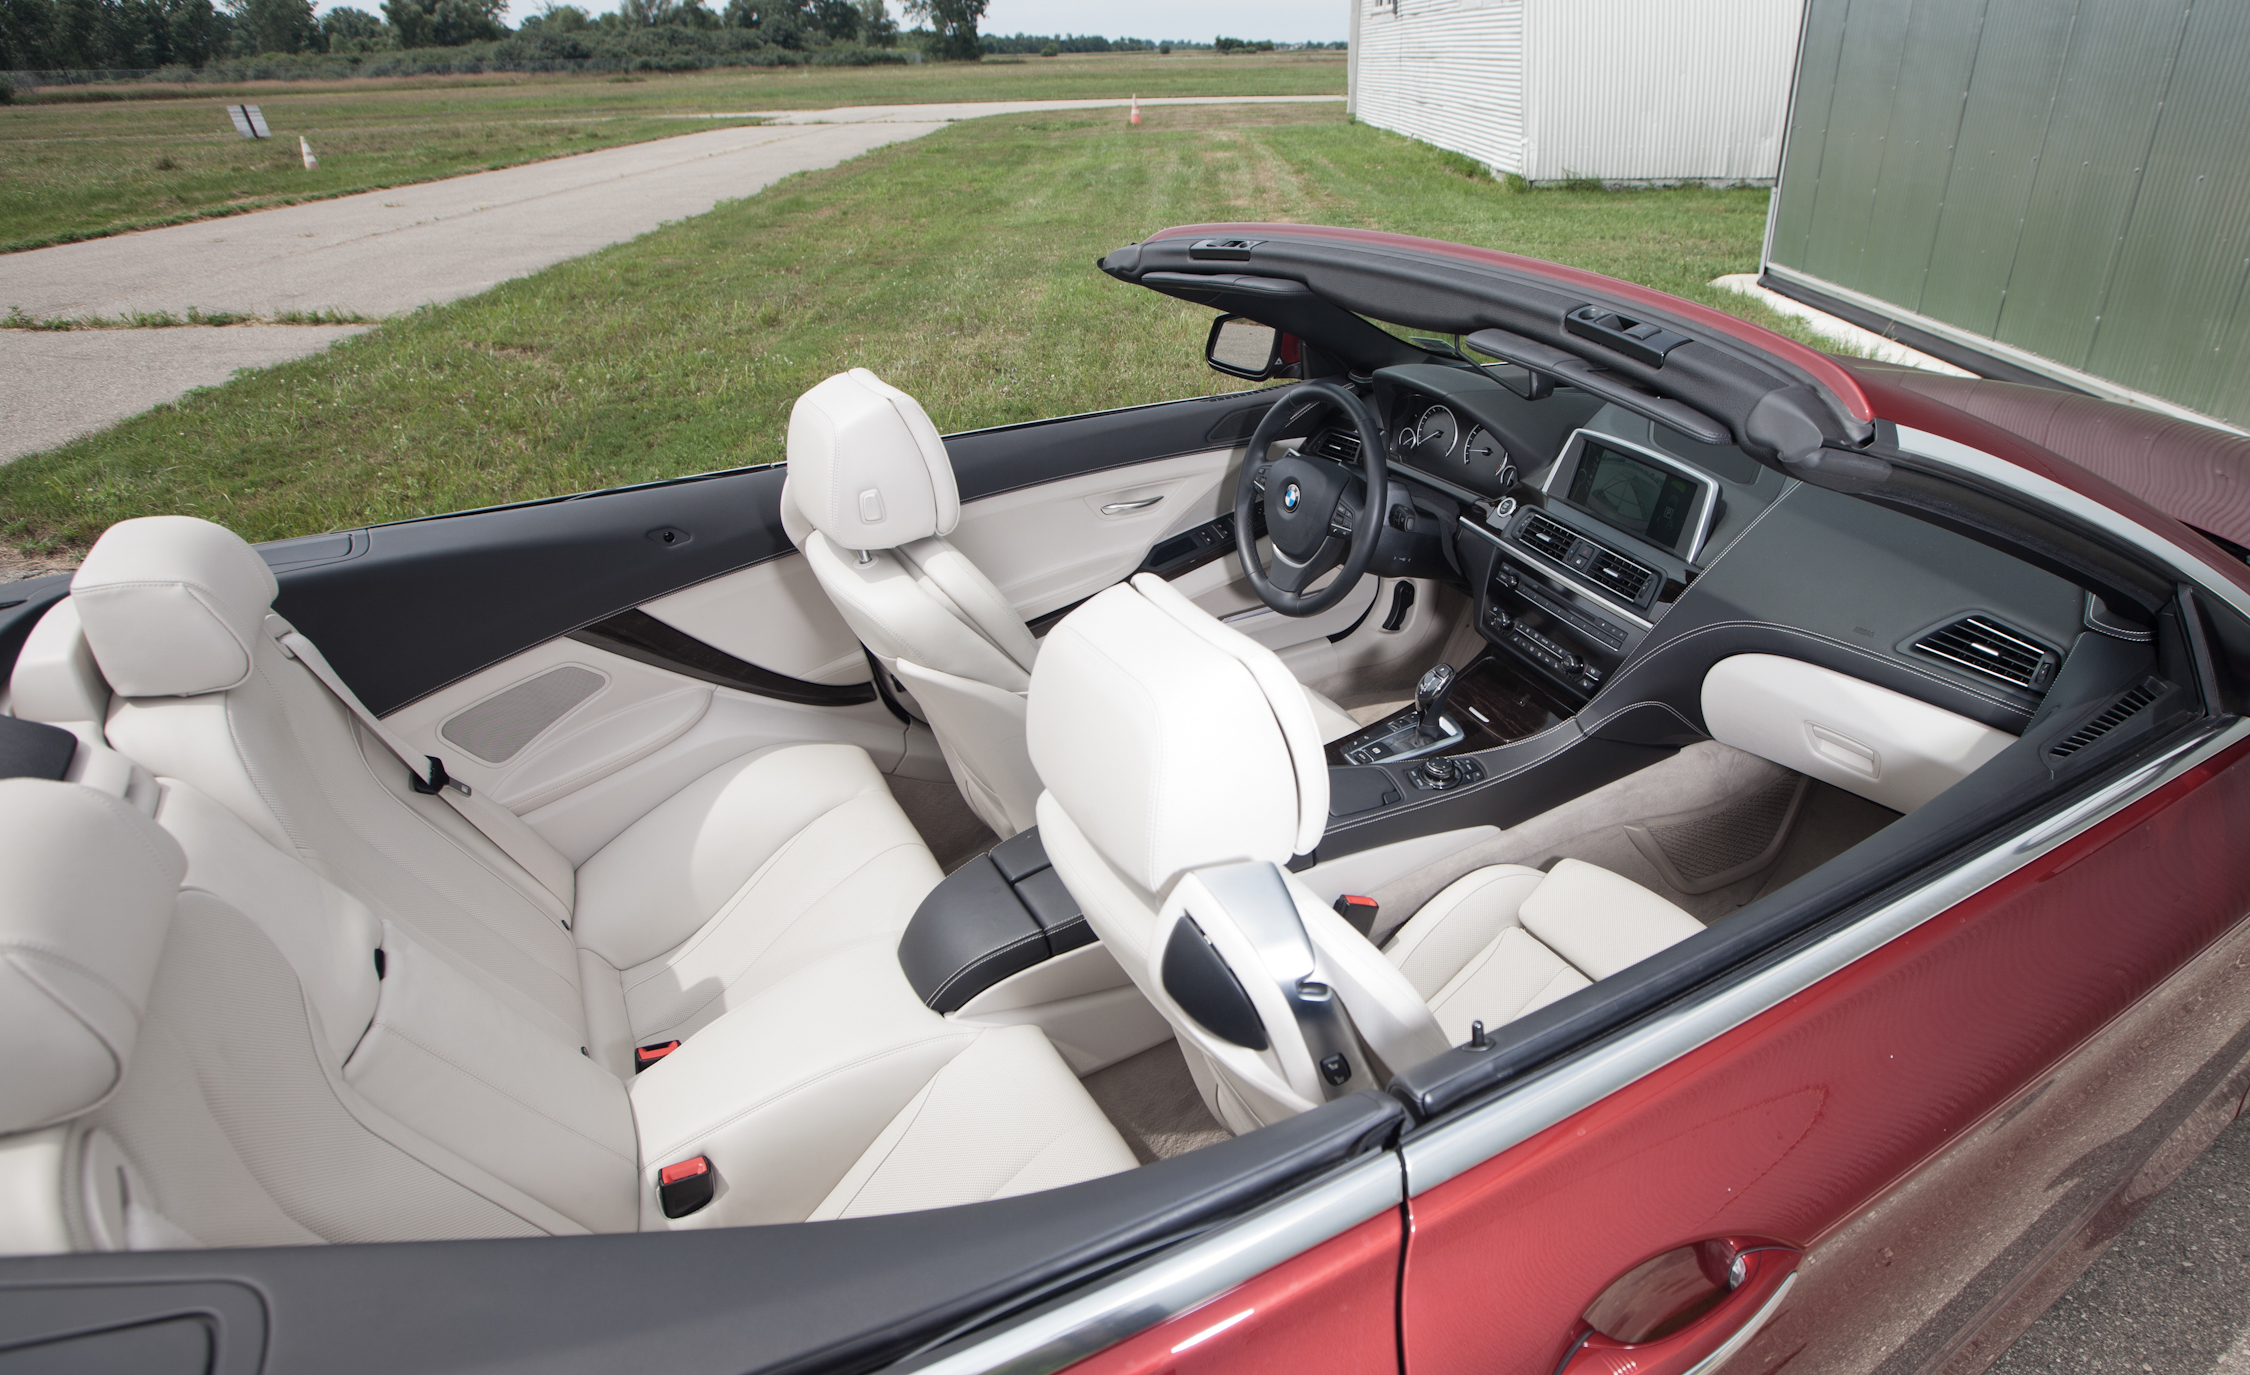 2012 BMW 650i Convertible Interior (Photo 11 of 19)